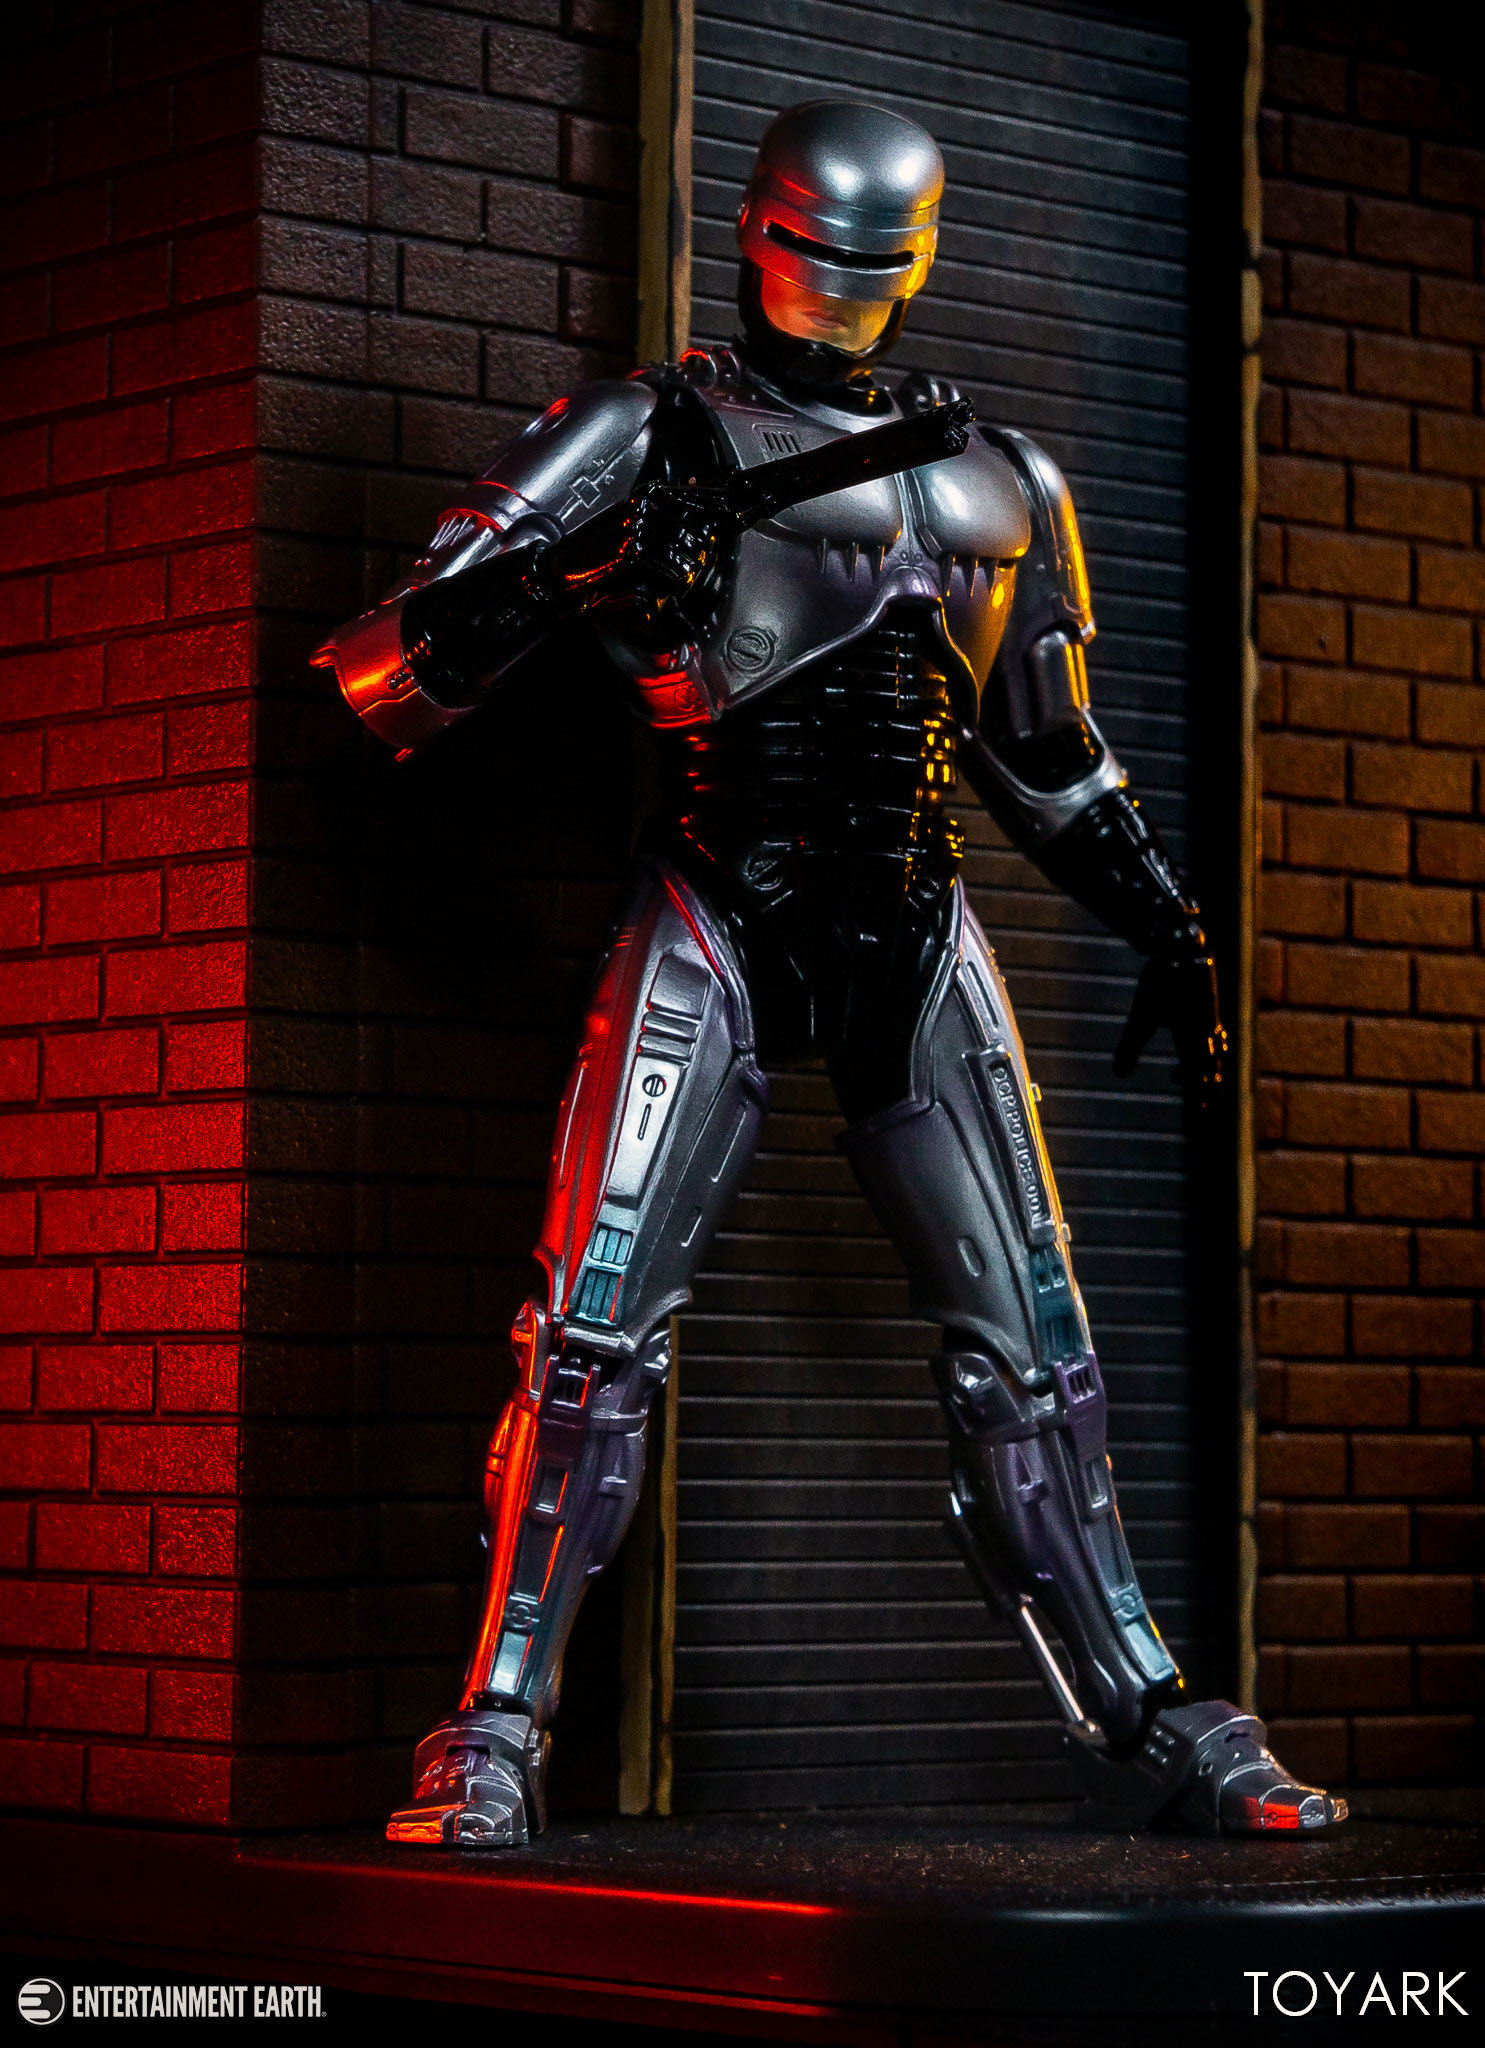 https://news.toyark.com/wp-content/uploads/sites/4/2019/03/MAFEX-Robocop-Gallery-020.jpg